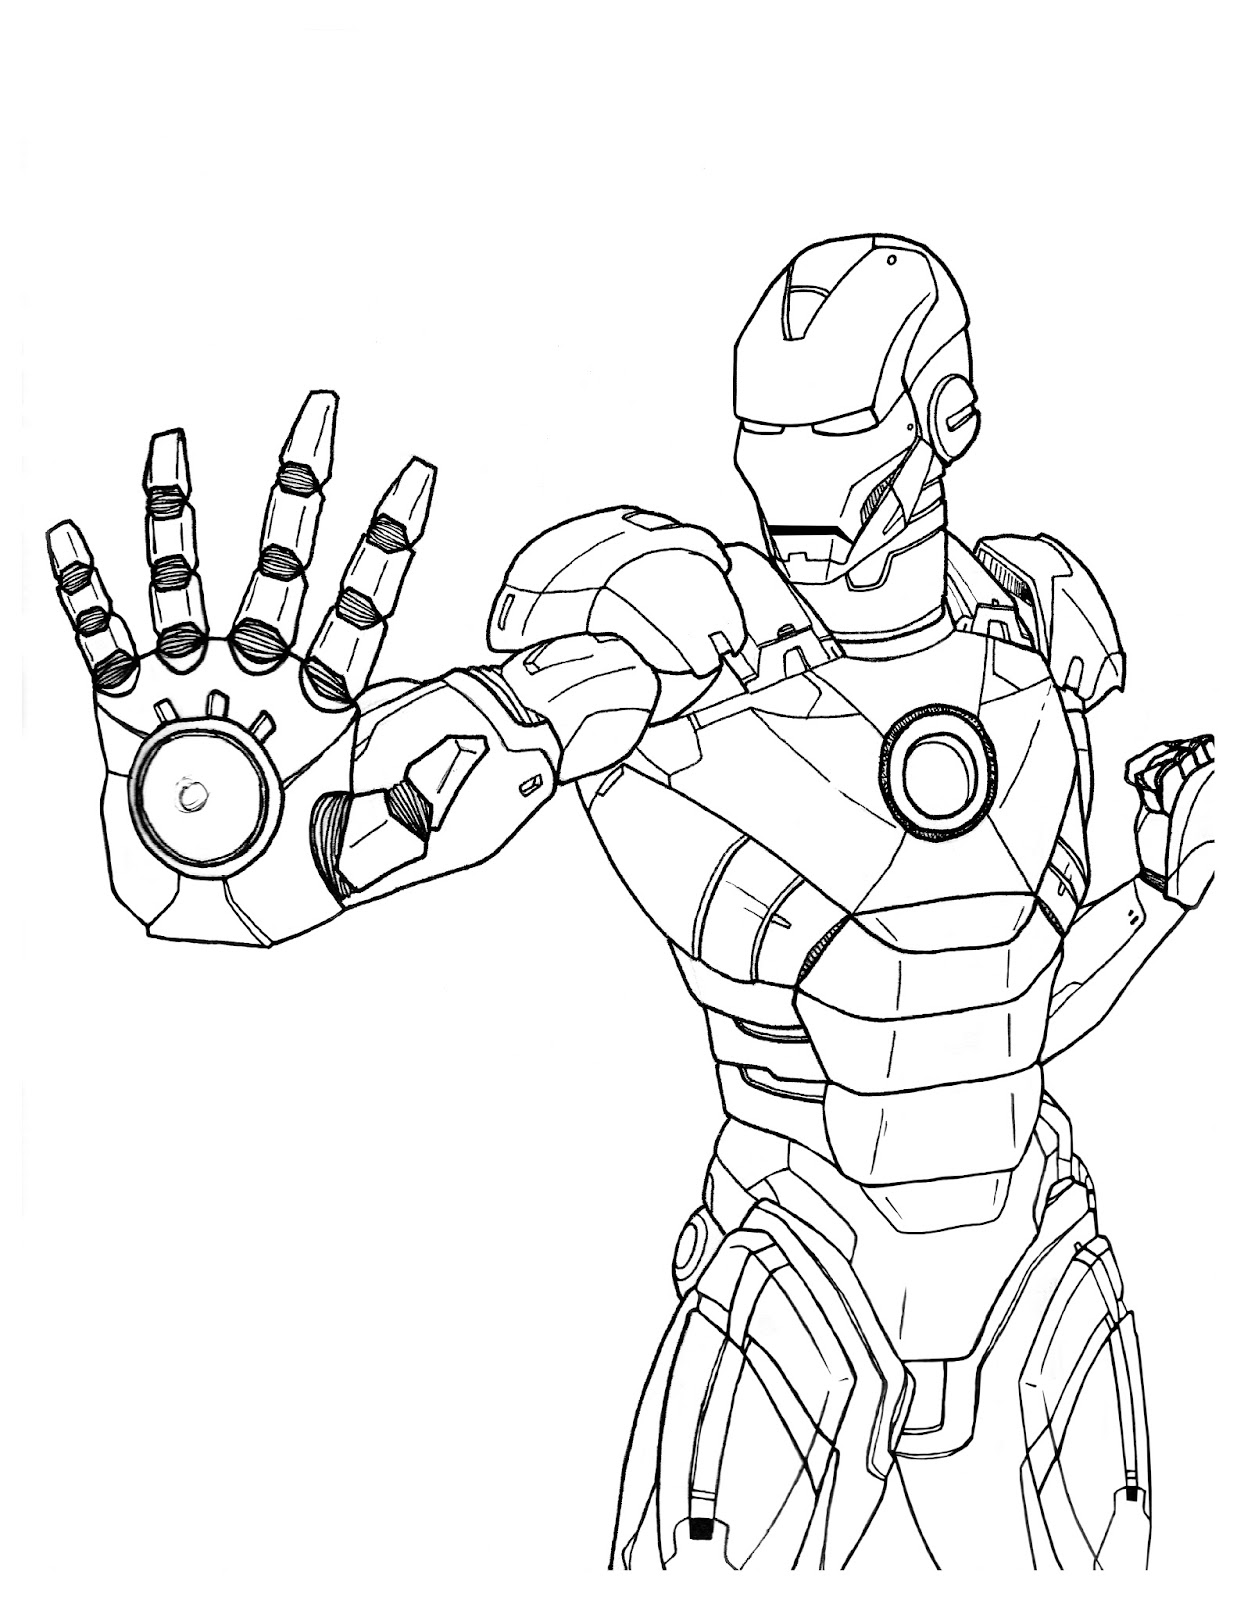 iron man outline iron man outline drawing at getdrawings free download iron outline man 1 1